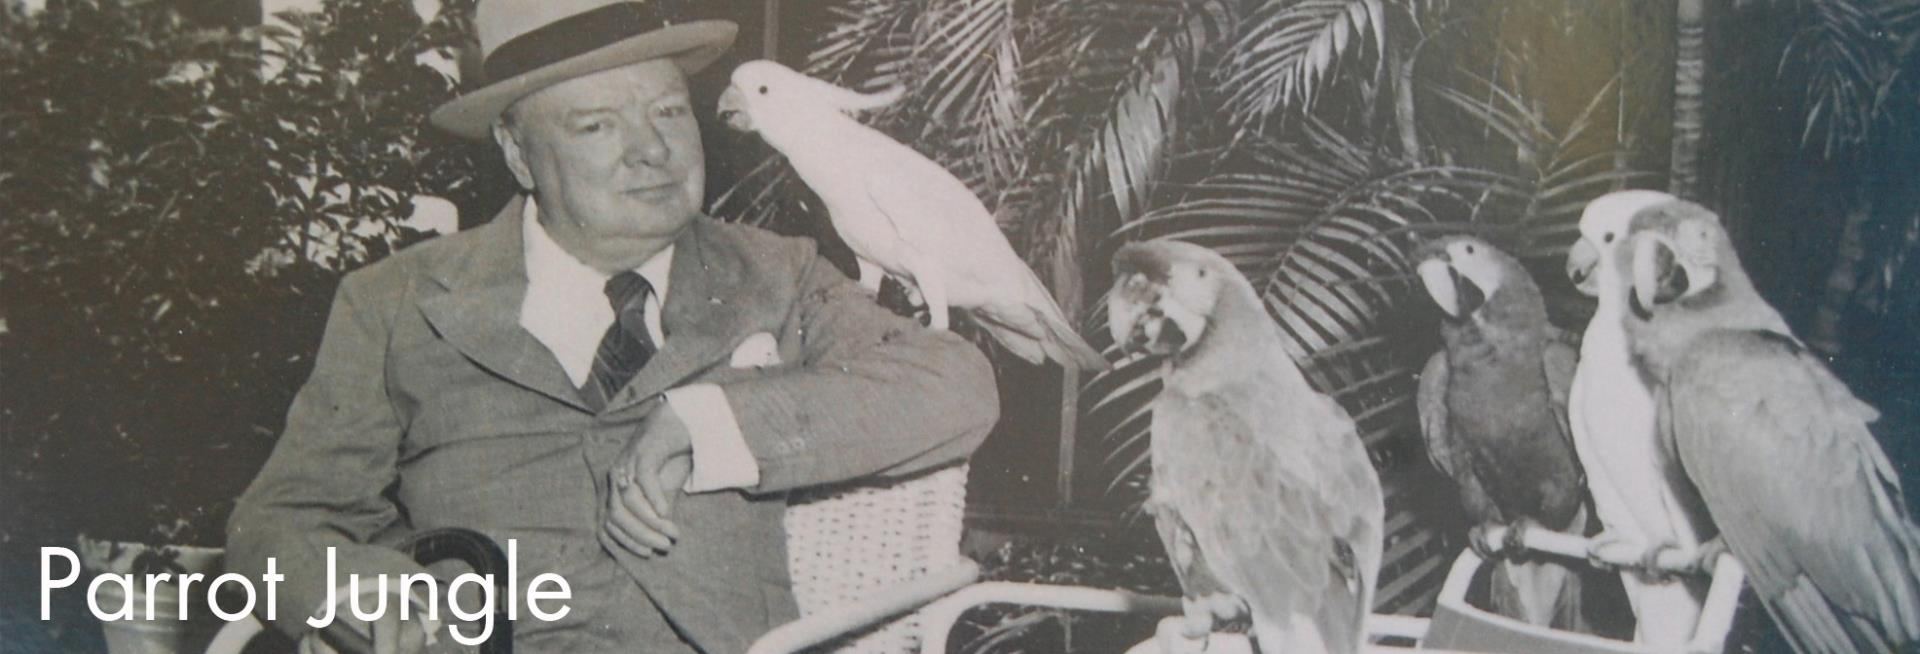 Churchill at Parrot Jungle